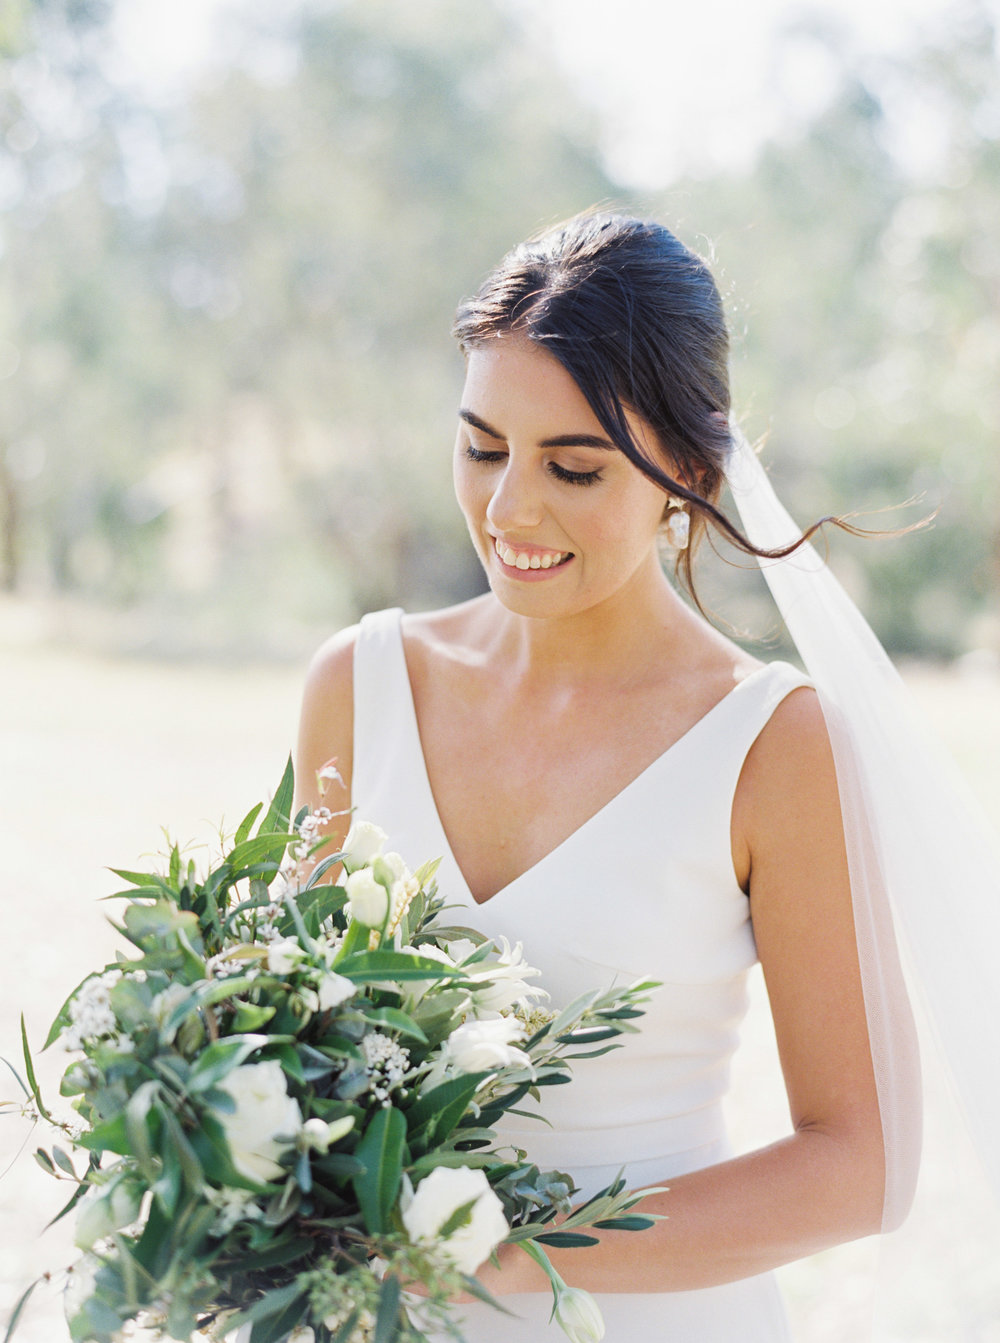 00038- Olive Tree Mediterranean Wedding in Mudgee NSW Australia Fine Art Film Wedding Lifestyle Photographer Sheri McMahon_.jpg